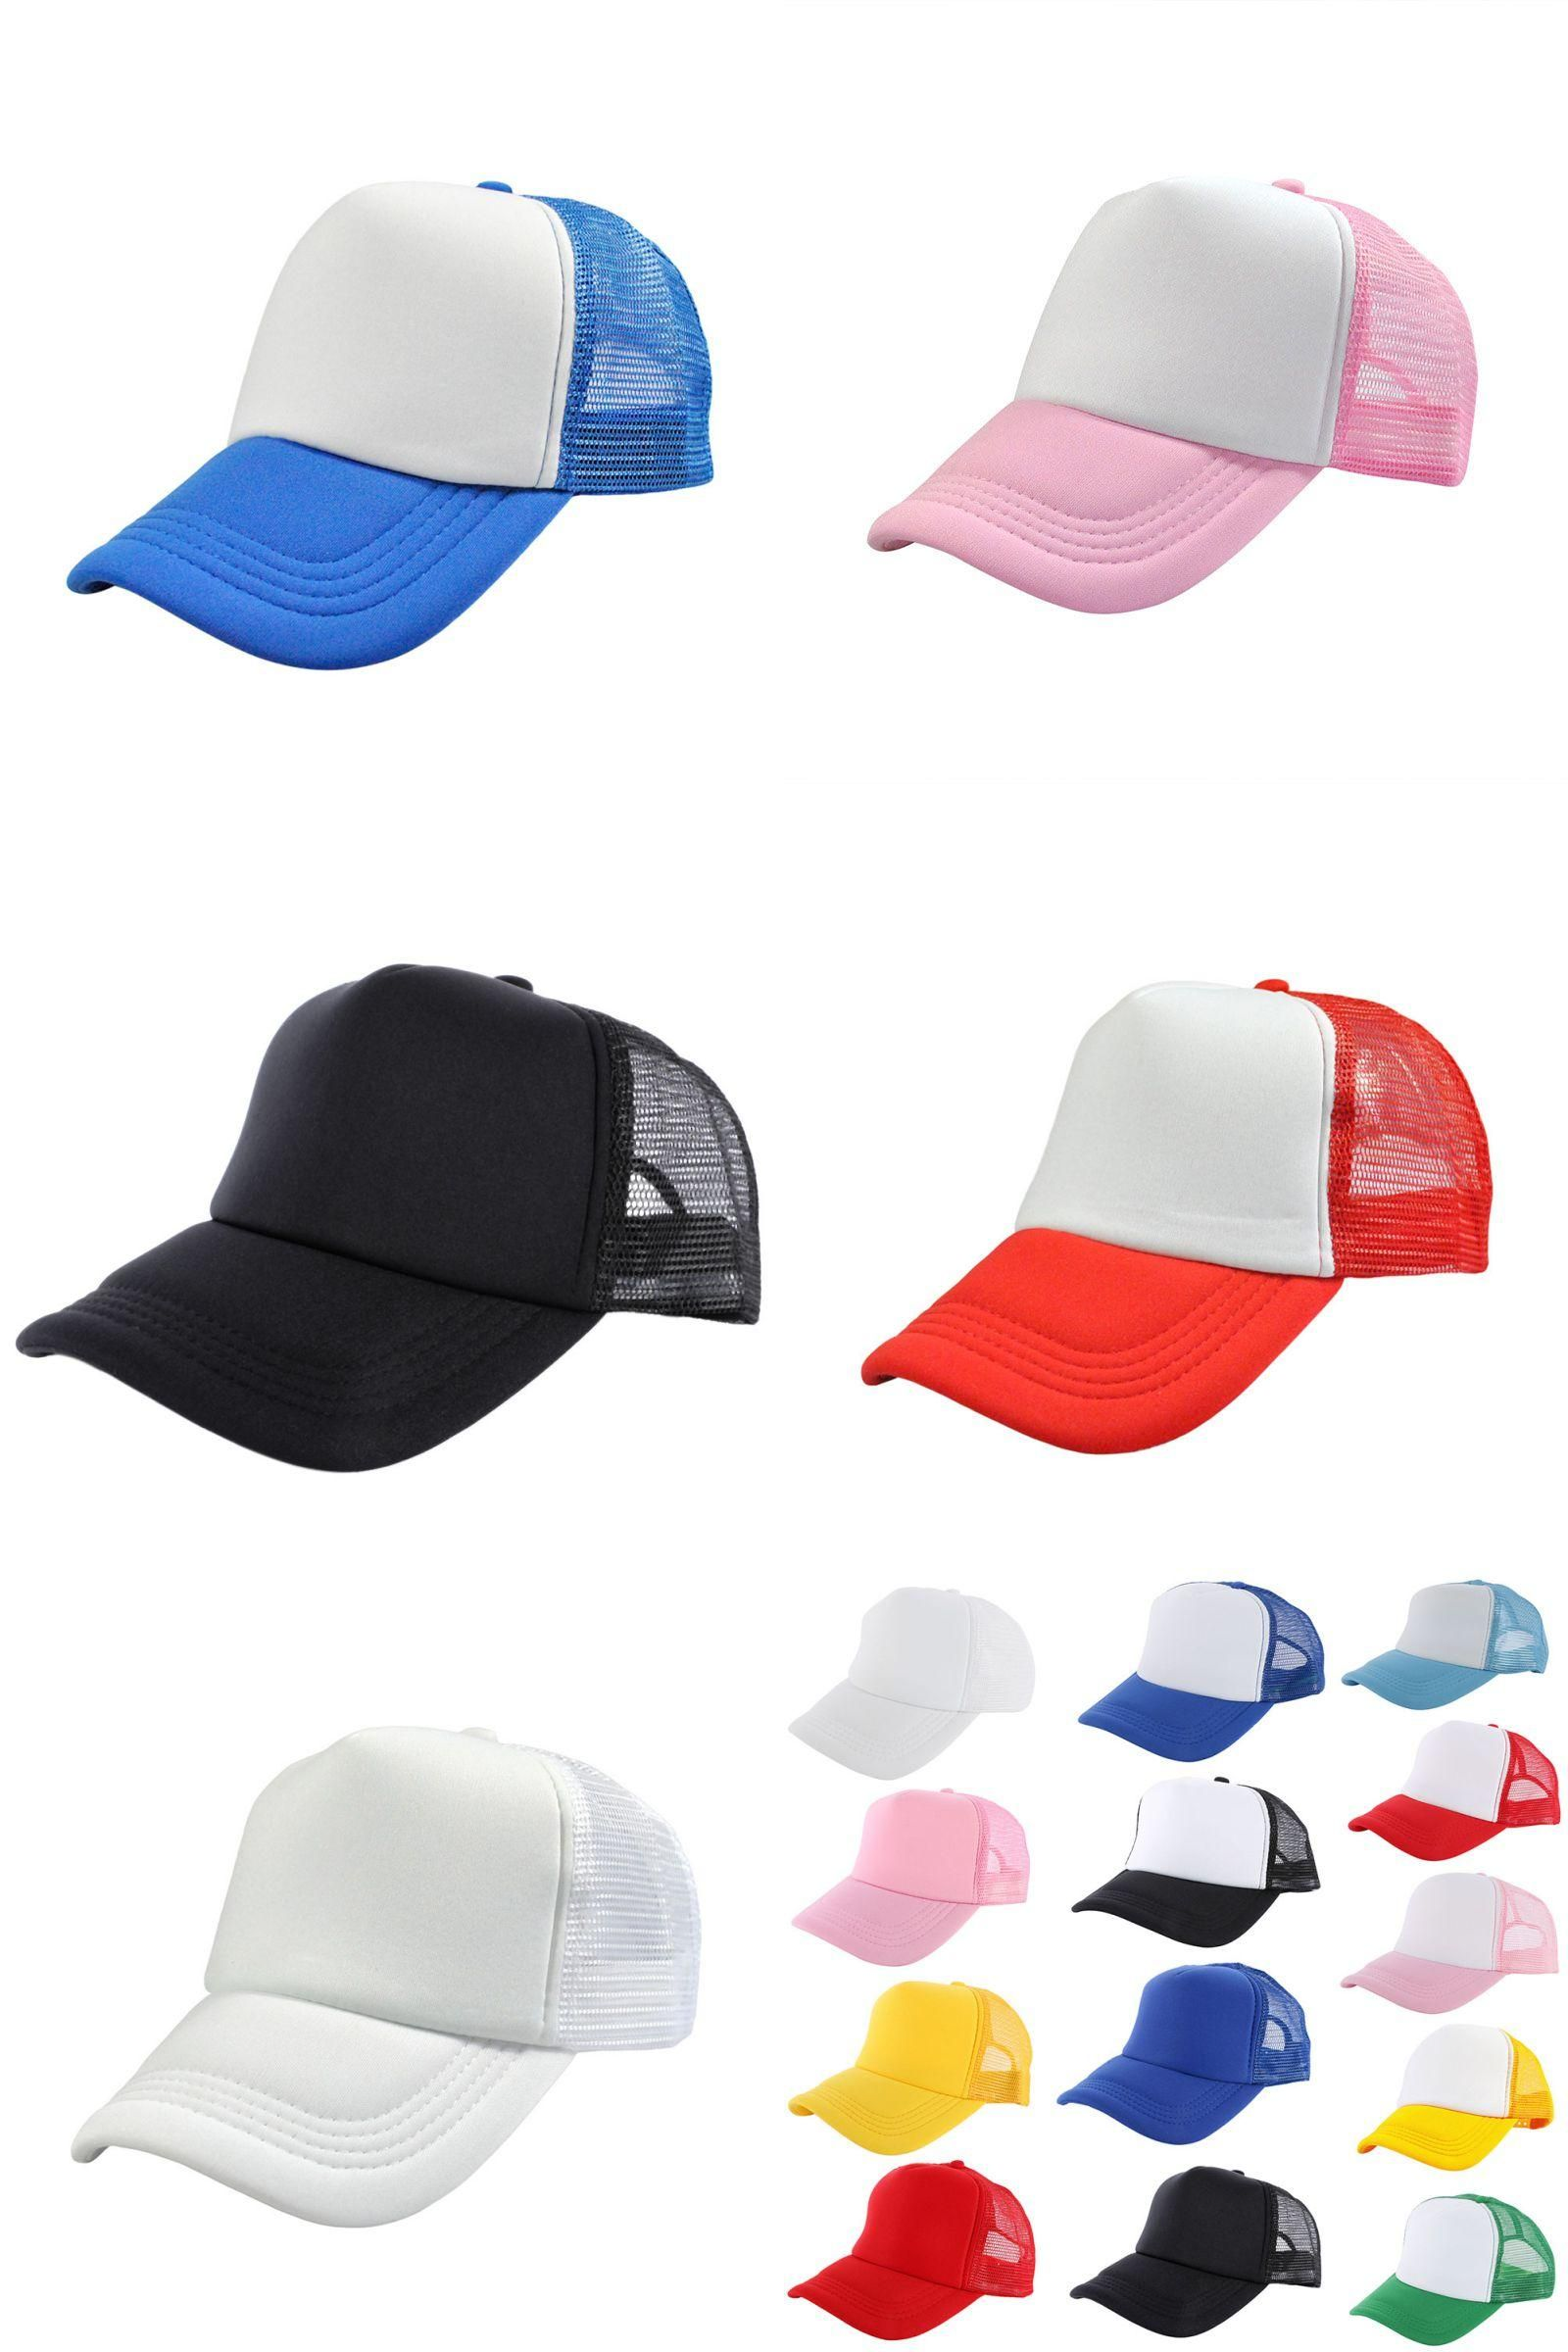 86dc82413d342 Visit to Buy] Men Sun Hat Women Unisex Plain Blank Curved Visor Hat ...